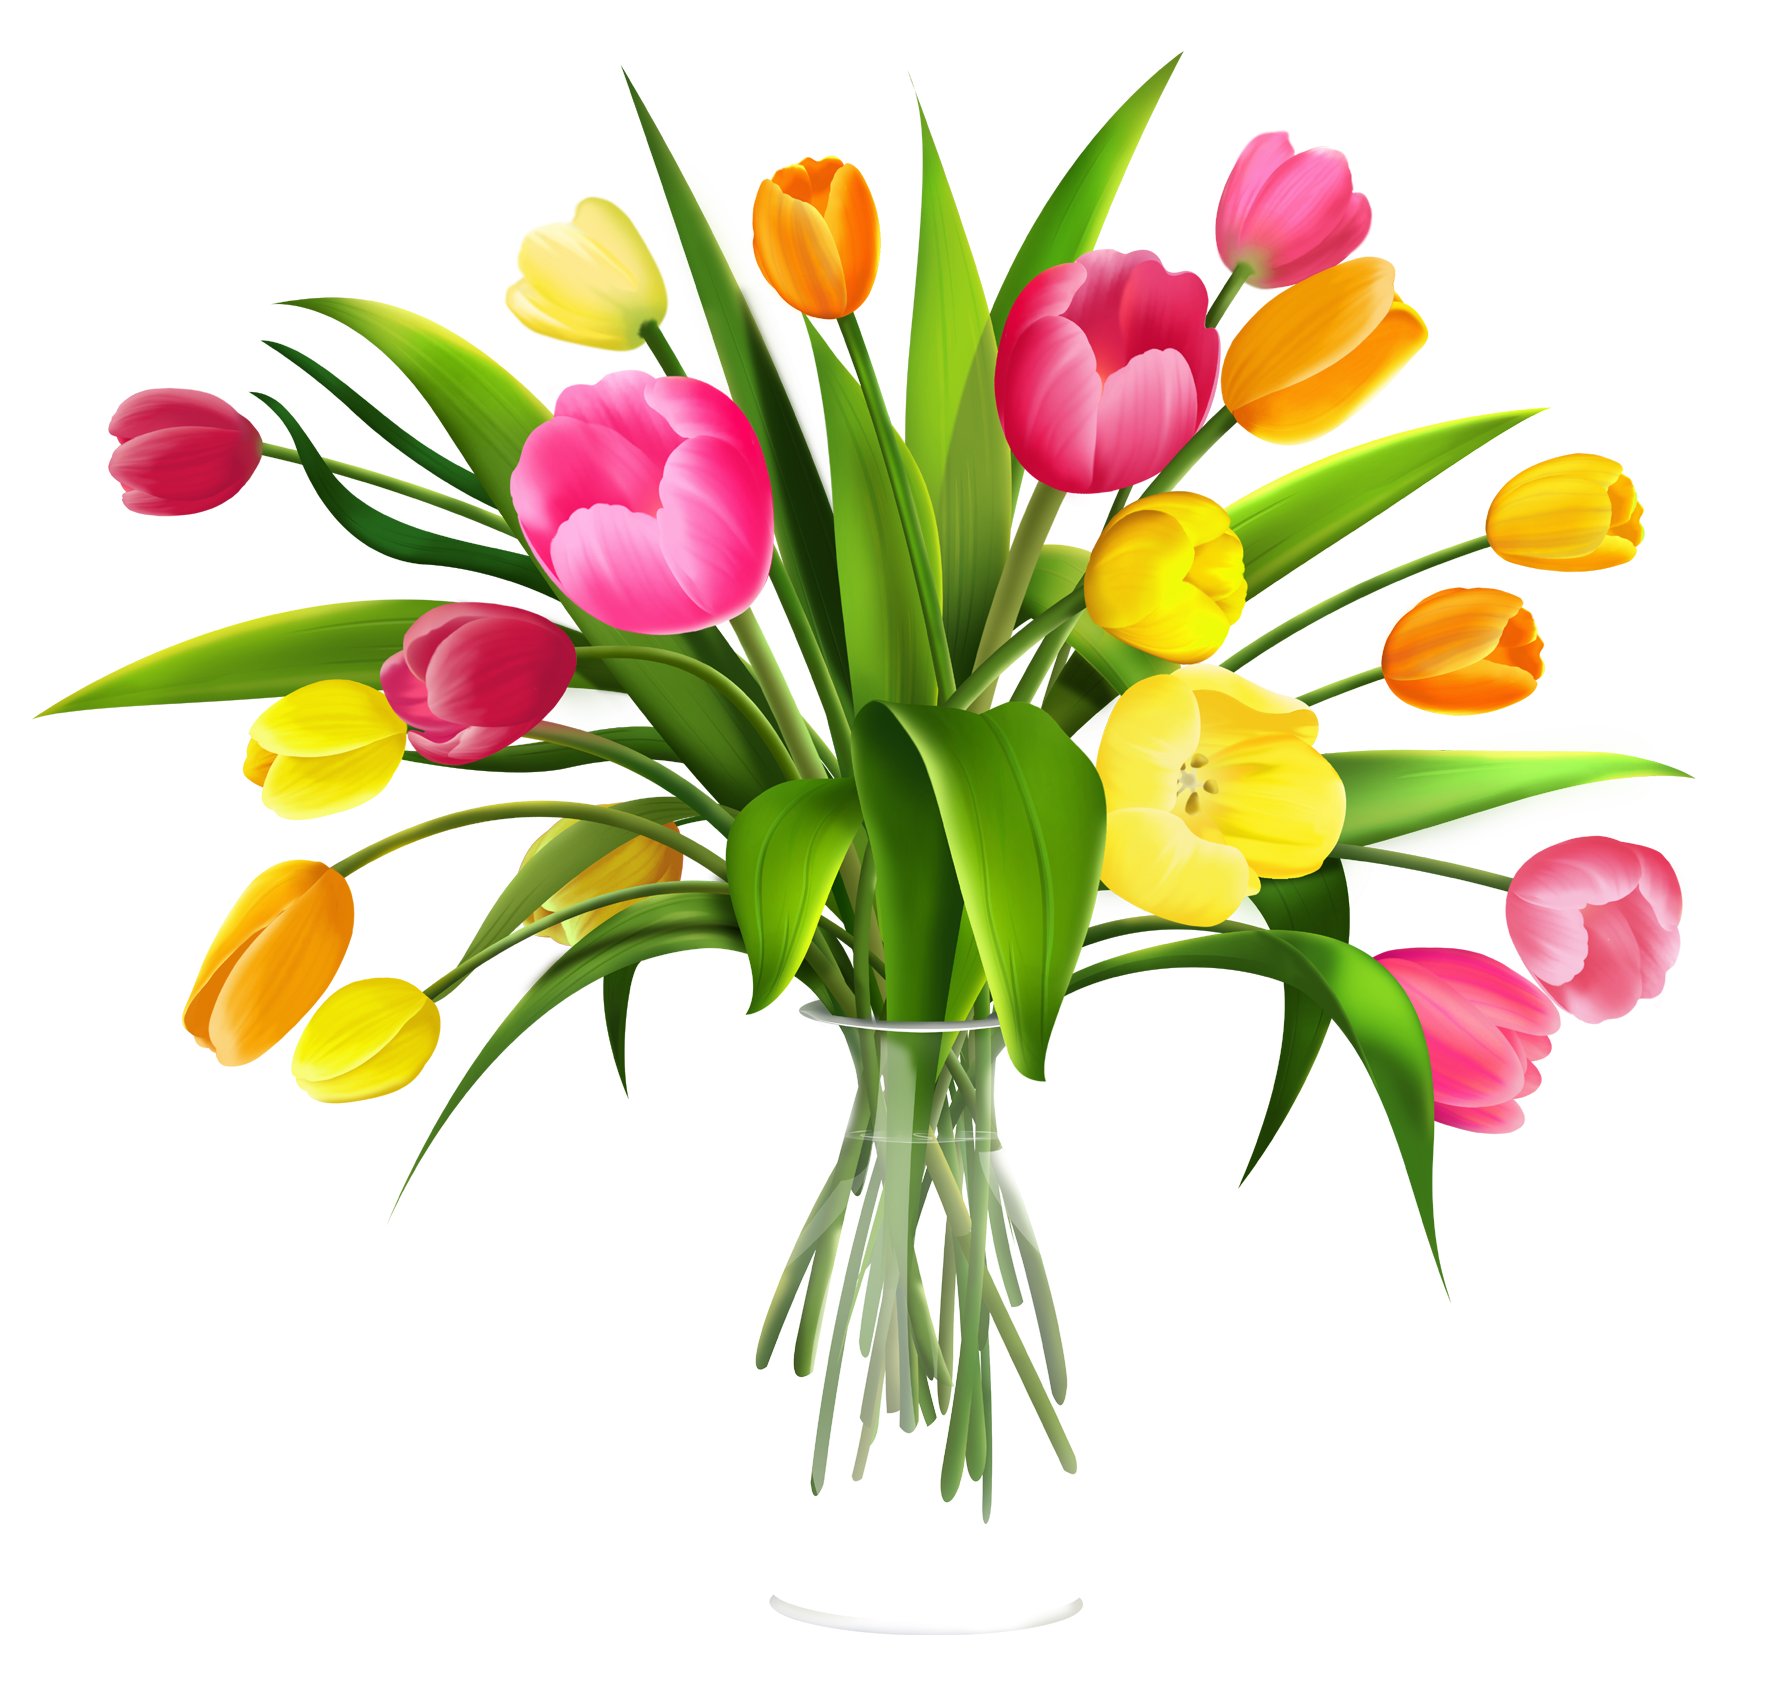 medium resolution of free clip art flowers in vase use these free images for your websites art